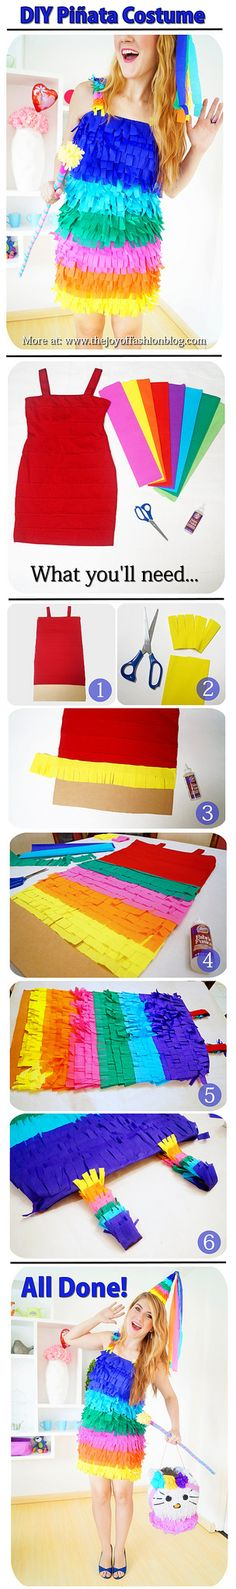 Piñata Costume Tutorial | More at my blog: www.thejoyoffash… | Flickr